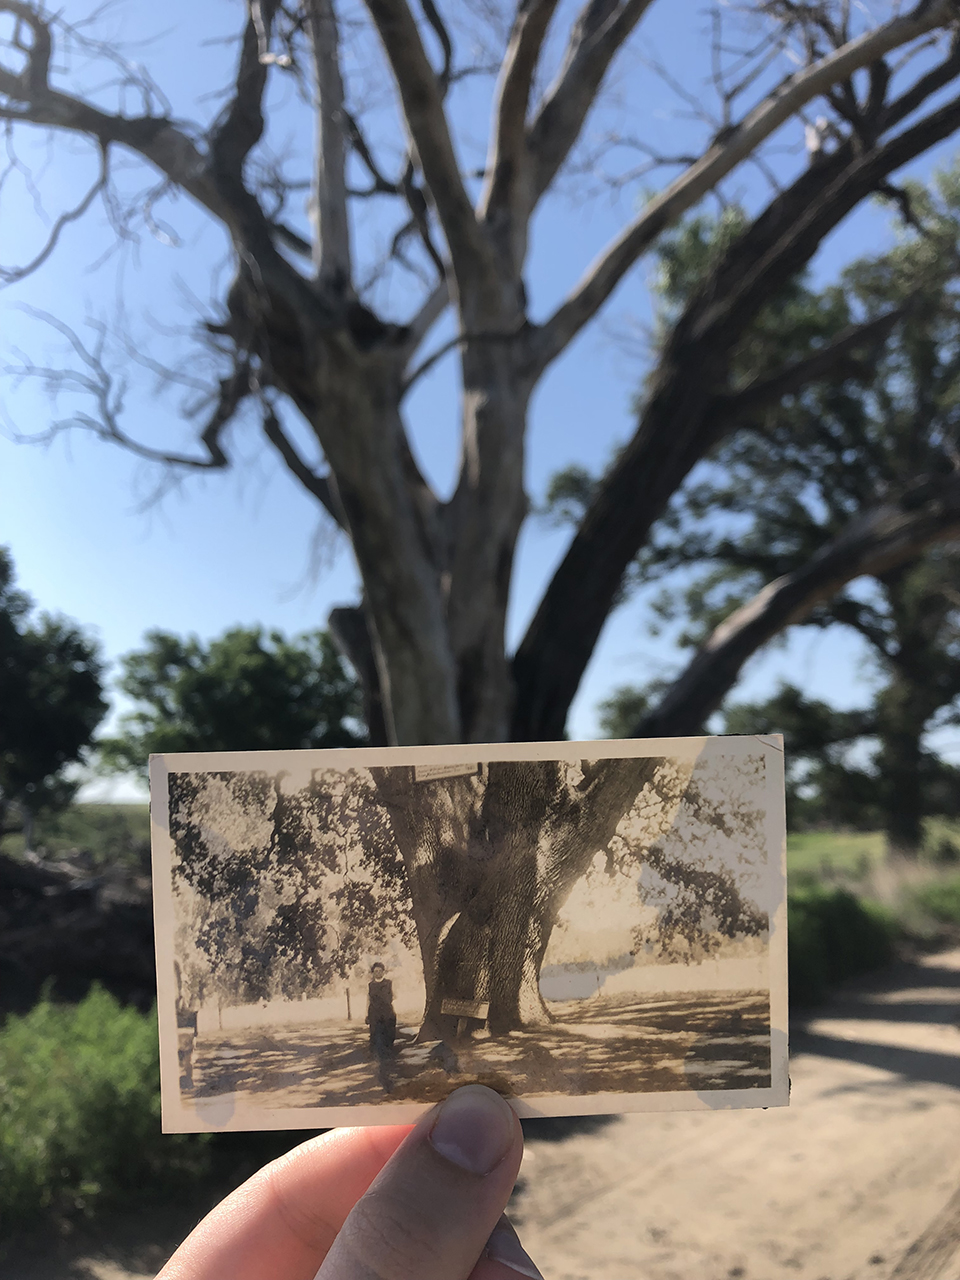 Photograph of a photograph of my great-great grandmother in front of the tree she is pictured in front of